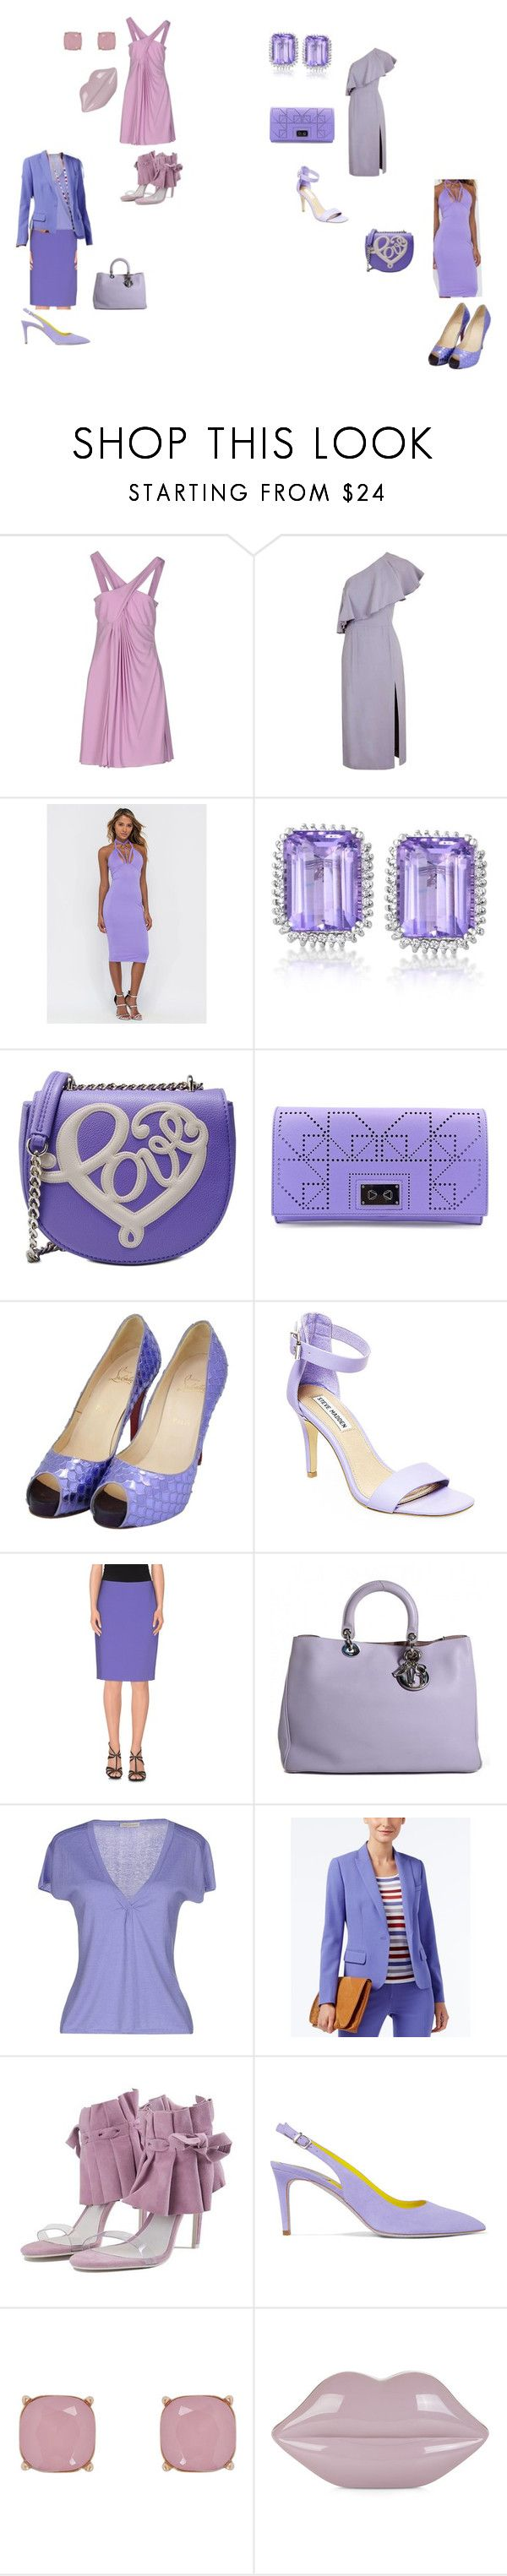 """lilac dresses"" by effyswanhaze ❤ liked on Polyvore featuring Versace Jeans Couture, Topshop, Love Moschino, Danielle Nicole, Christian Louboutin, Steve Madden, Alberta Ferretti, Christian Dior, Maria Di Ripabianca and Anne Klein"